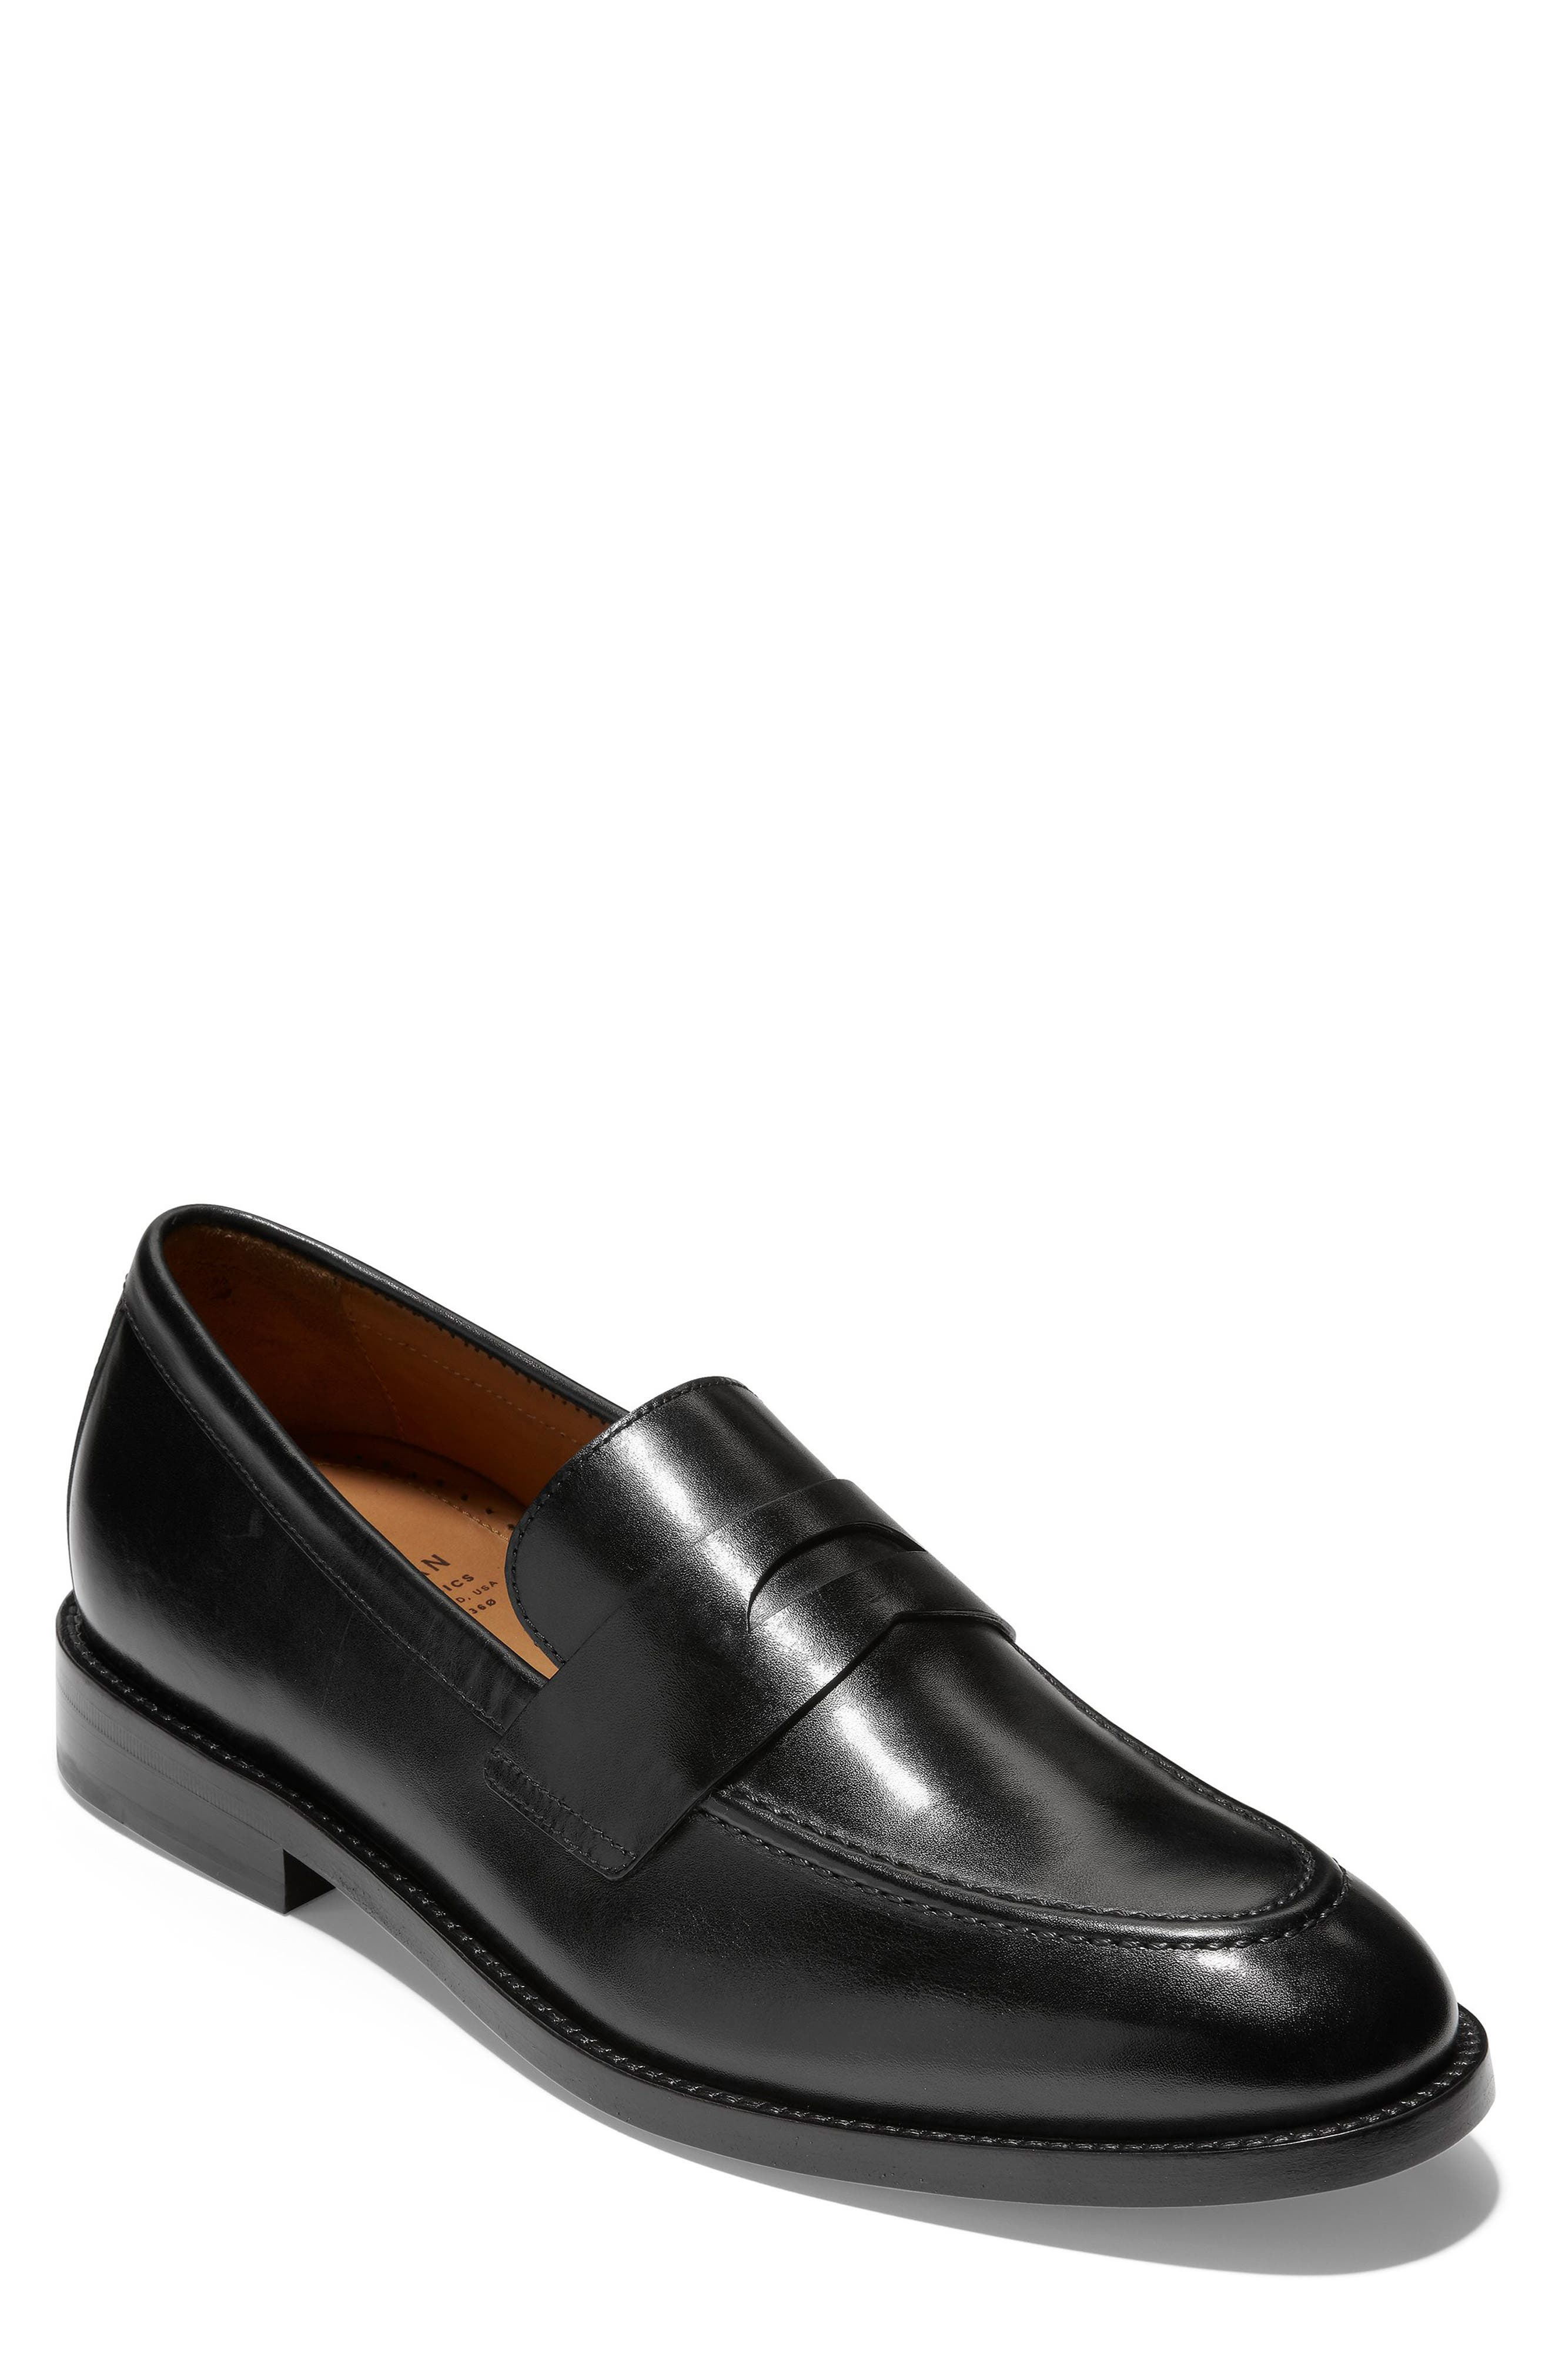 COLE HAAN, American Classics Kneeland Penny Loafer, Main thumbnail 1, color, BLACK LEATHER